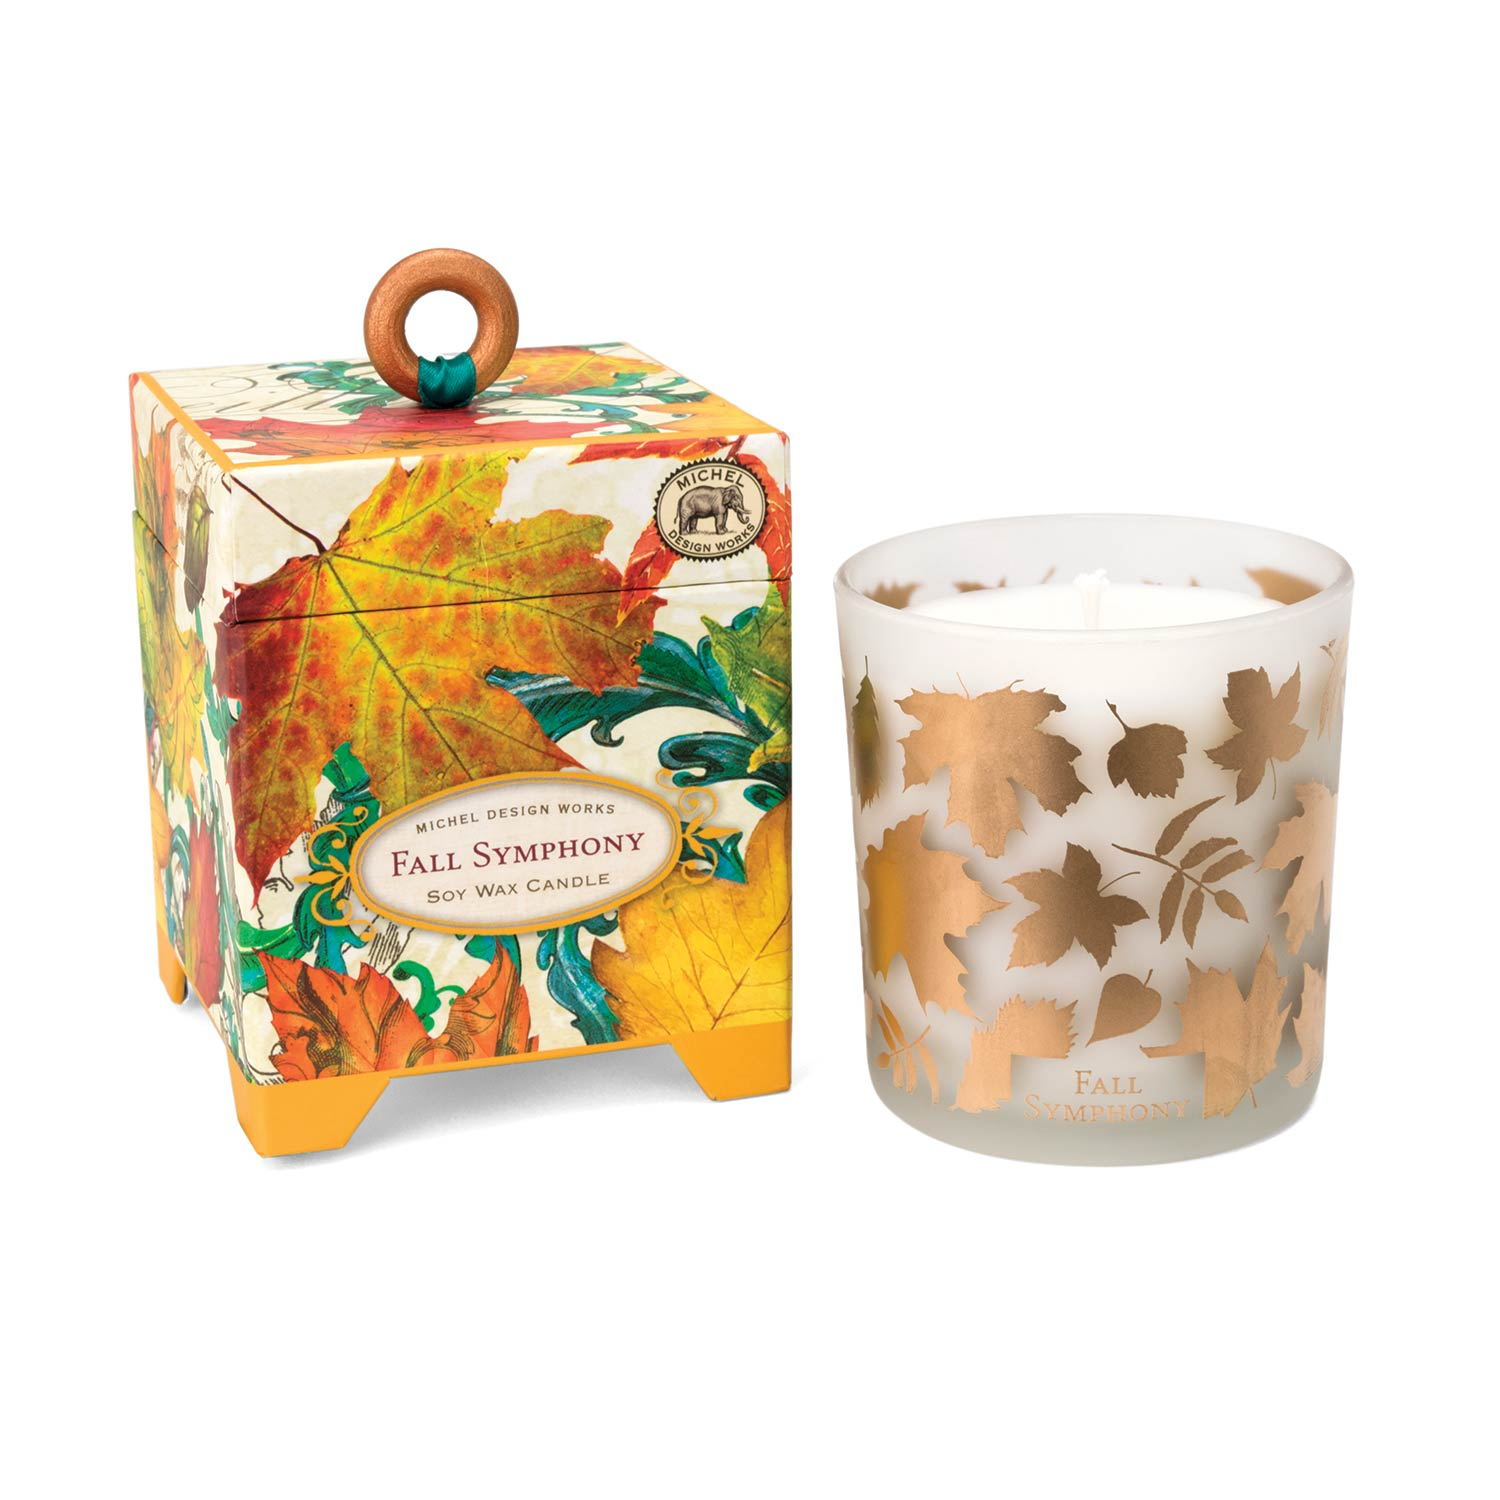 fall symphony soy wax candle